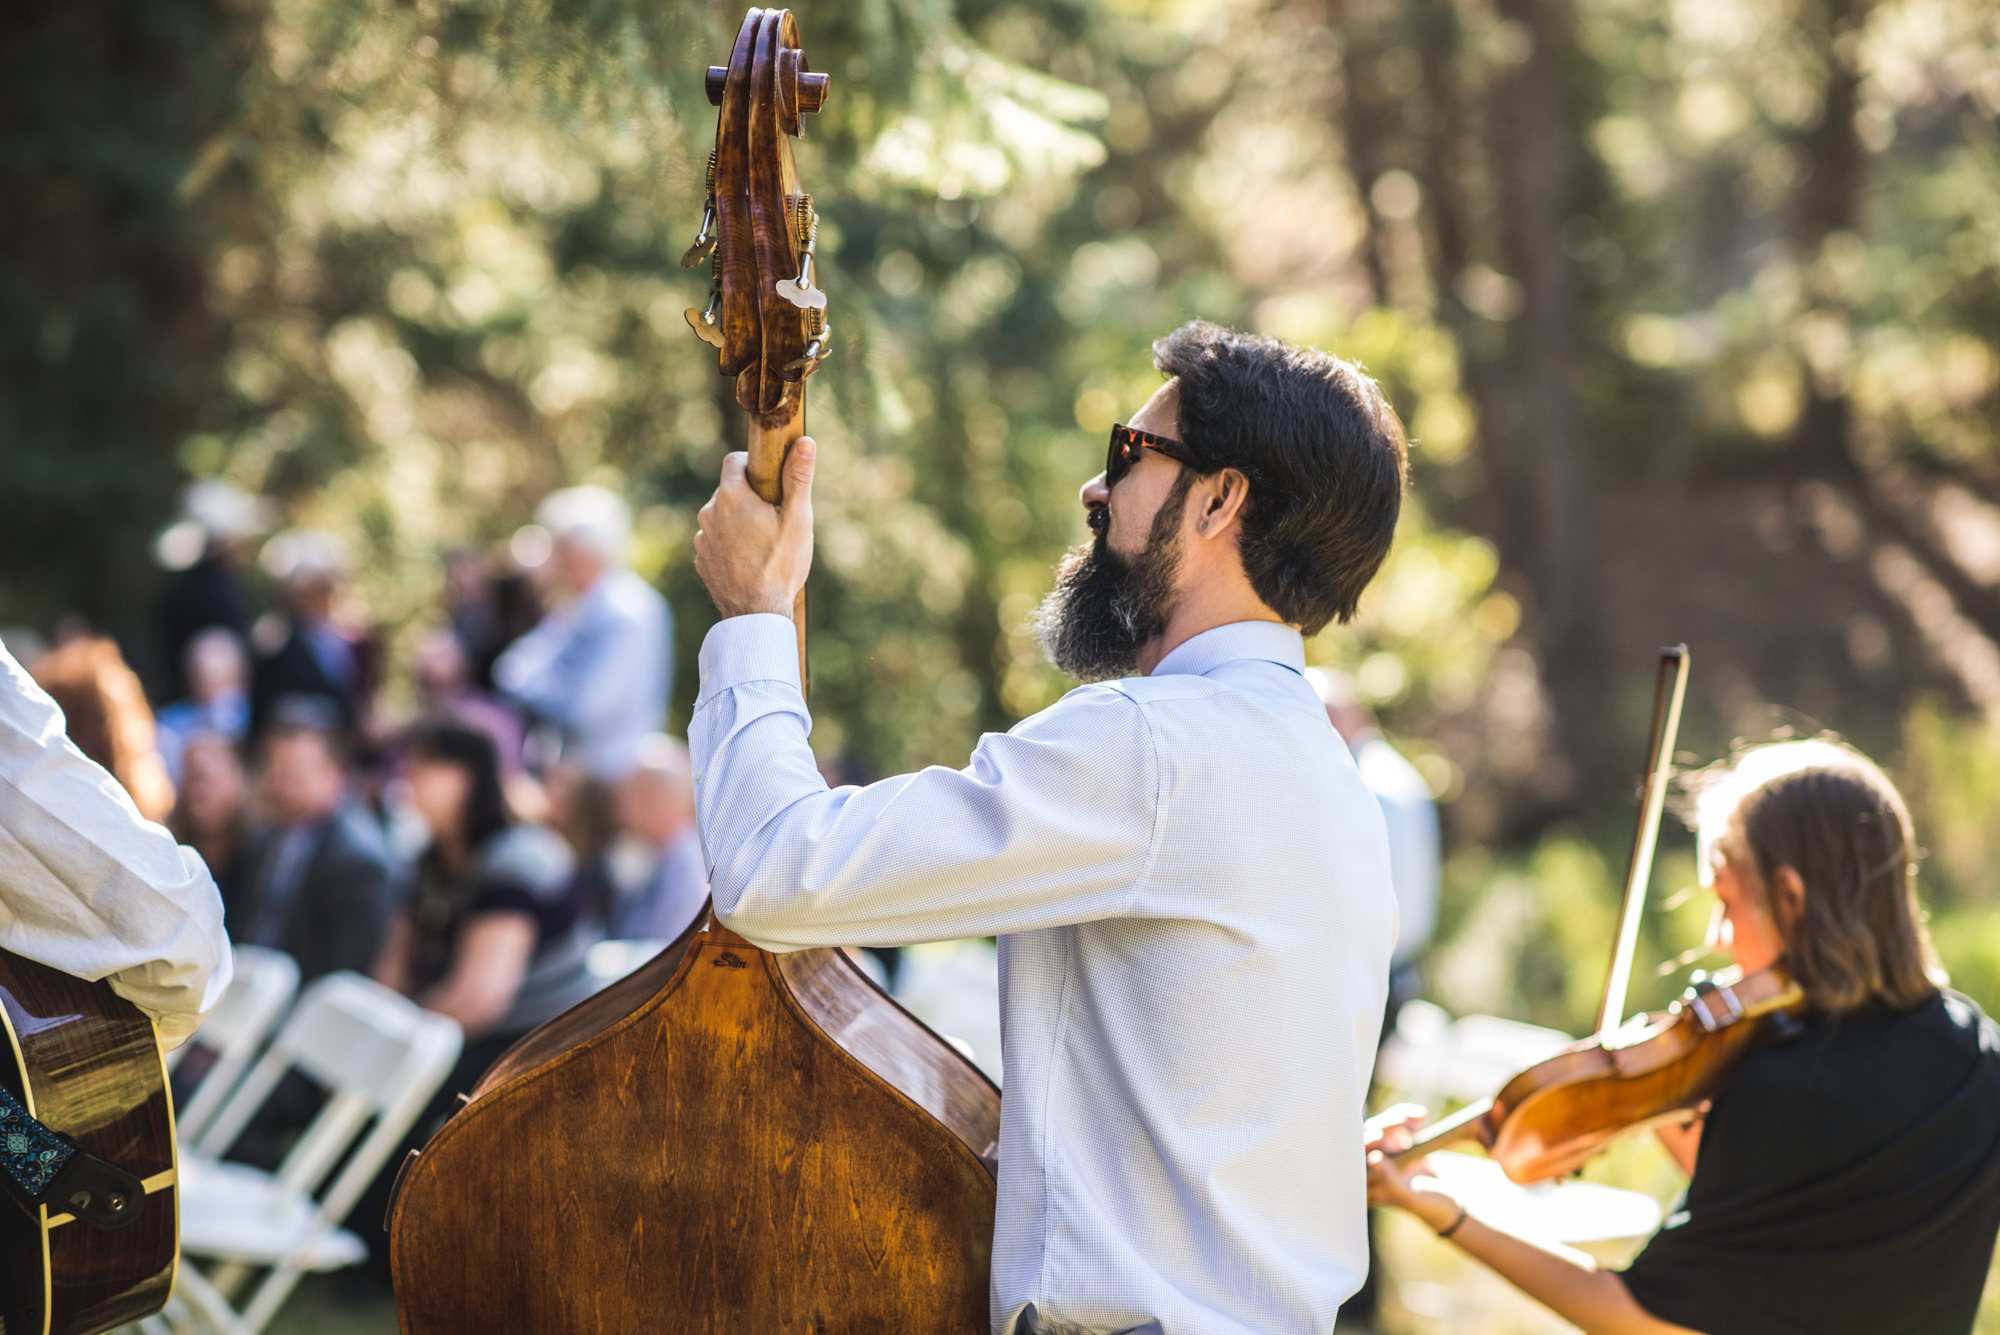 Man plays a cello and woman plays the violin at a wedding ceremony in the woods of Morrison, Colorado